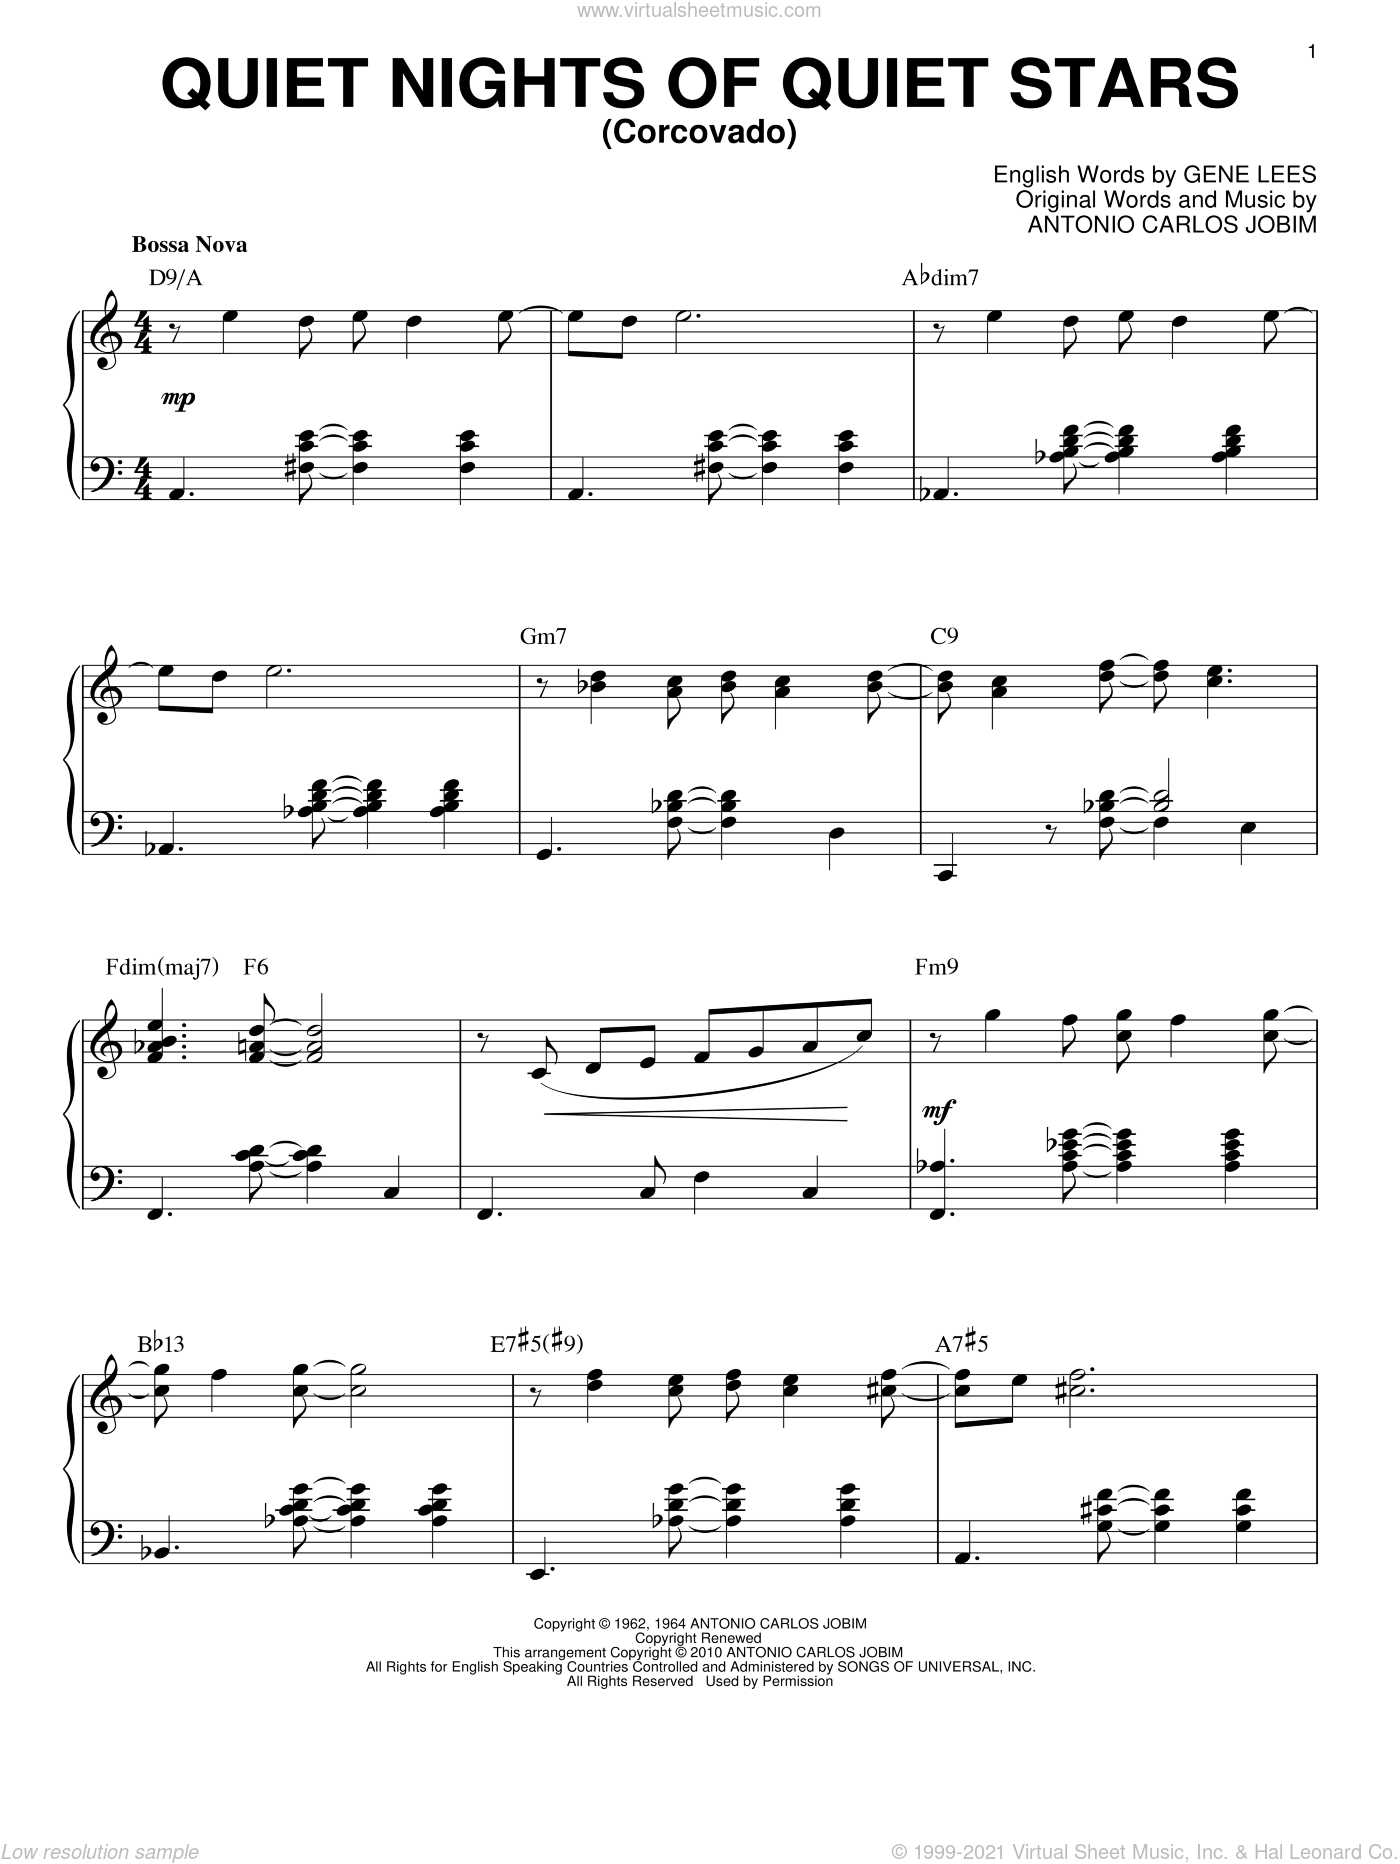 Quiet Nights Of Quiet Stars (Corcovado) sheet music for piano solo by Eugene John Lees